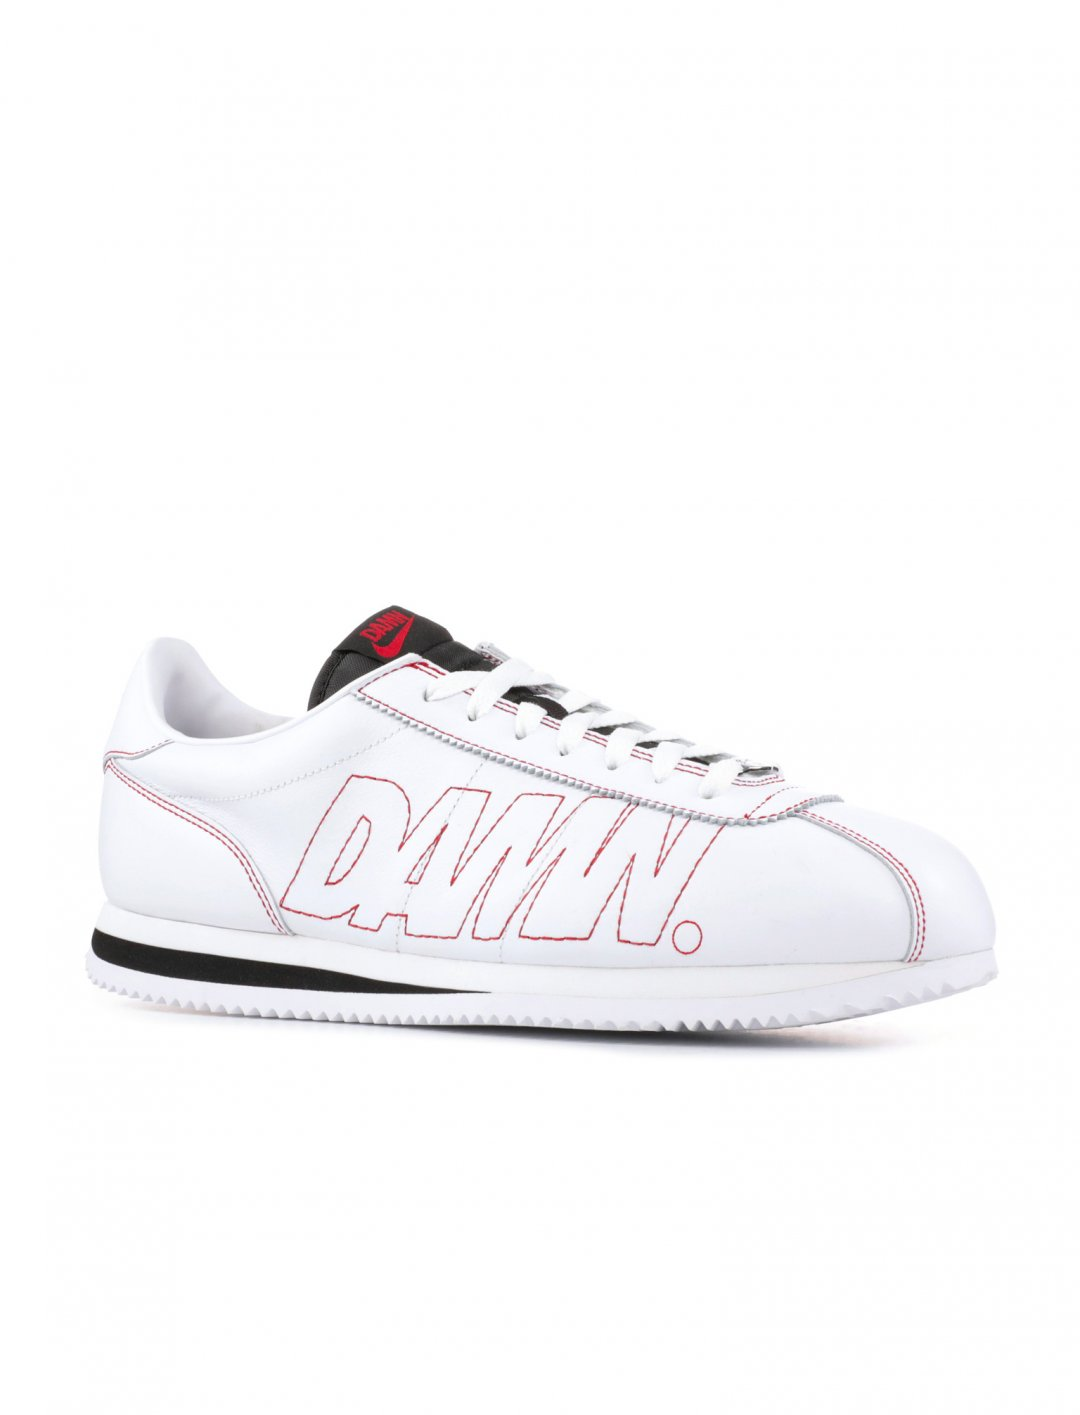 "Cortez Kenny 1 Shoes {""id"":12,""product_section_id"":1,""name"":""Shoes"",""order"":12} Nike"